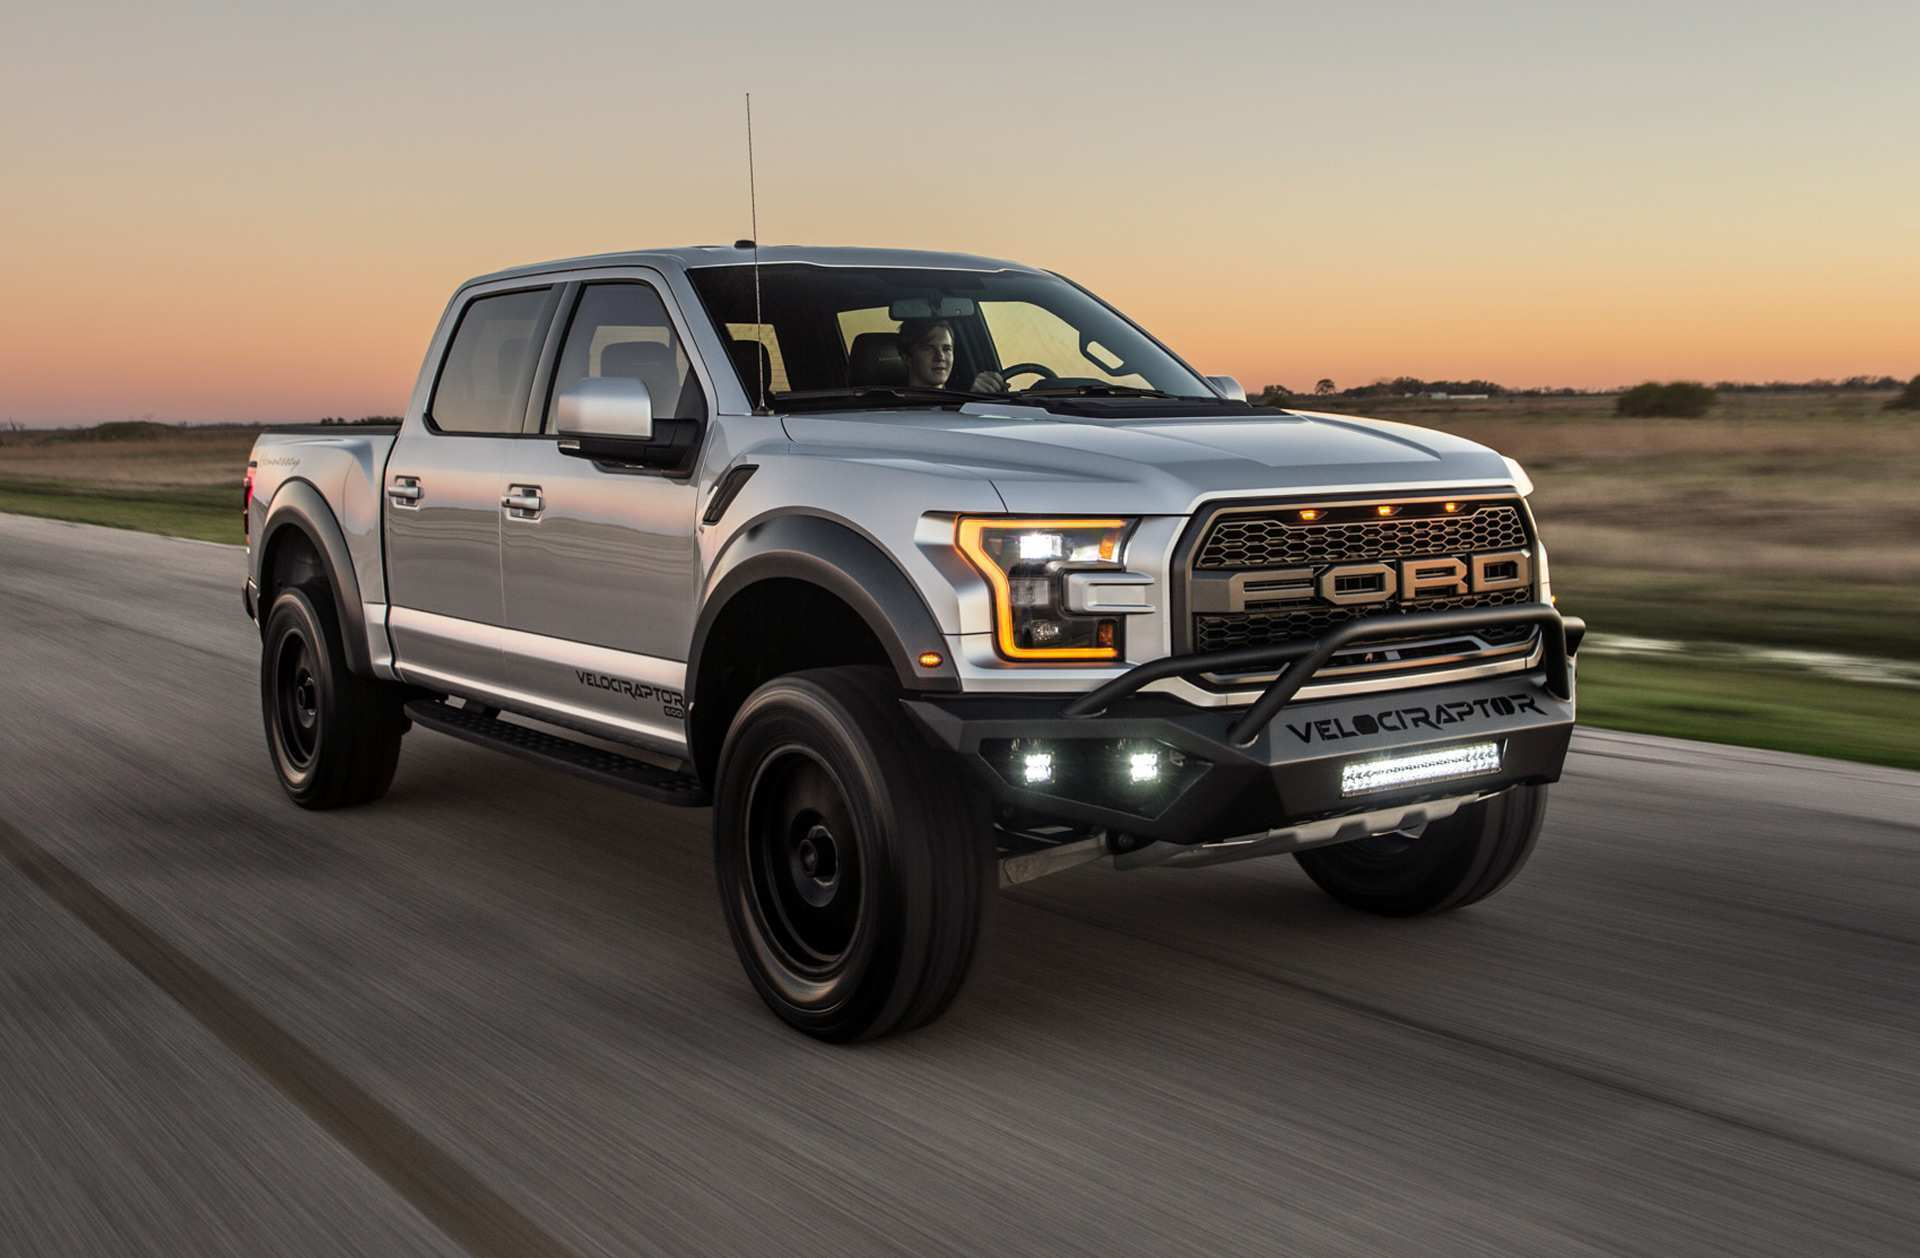 82 All New 2019 Ford F150 Raptor New Model And Performance